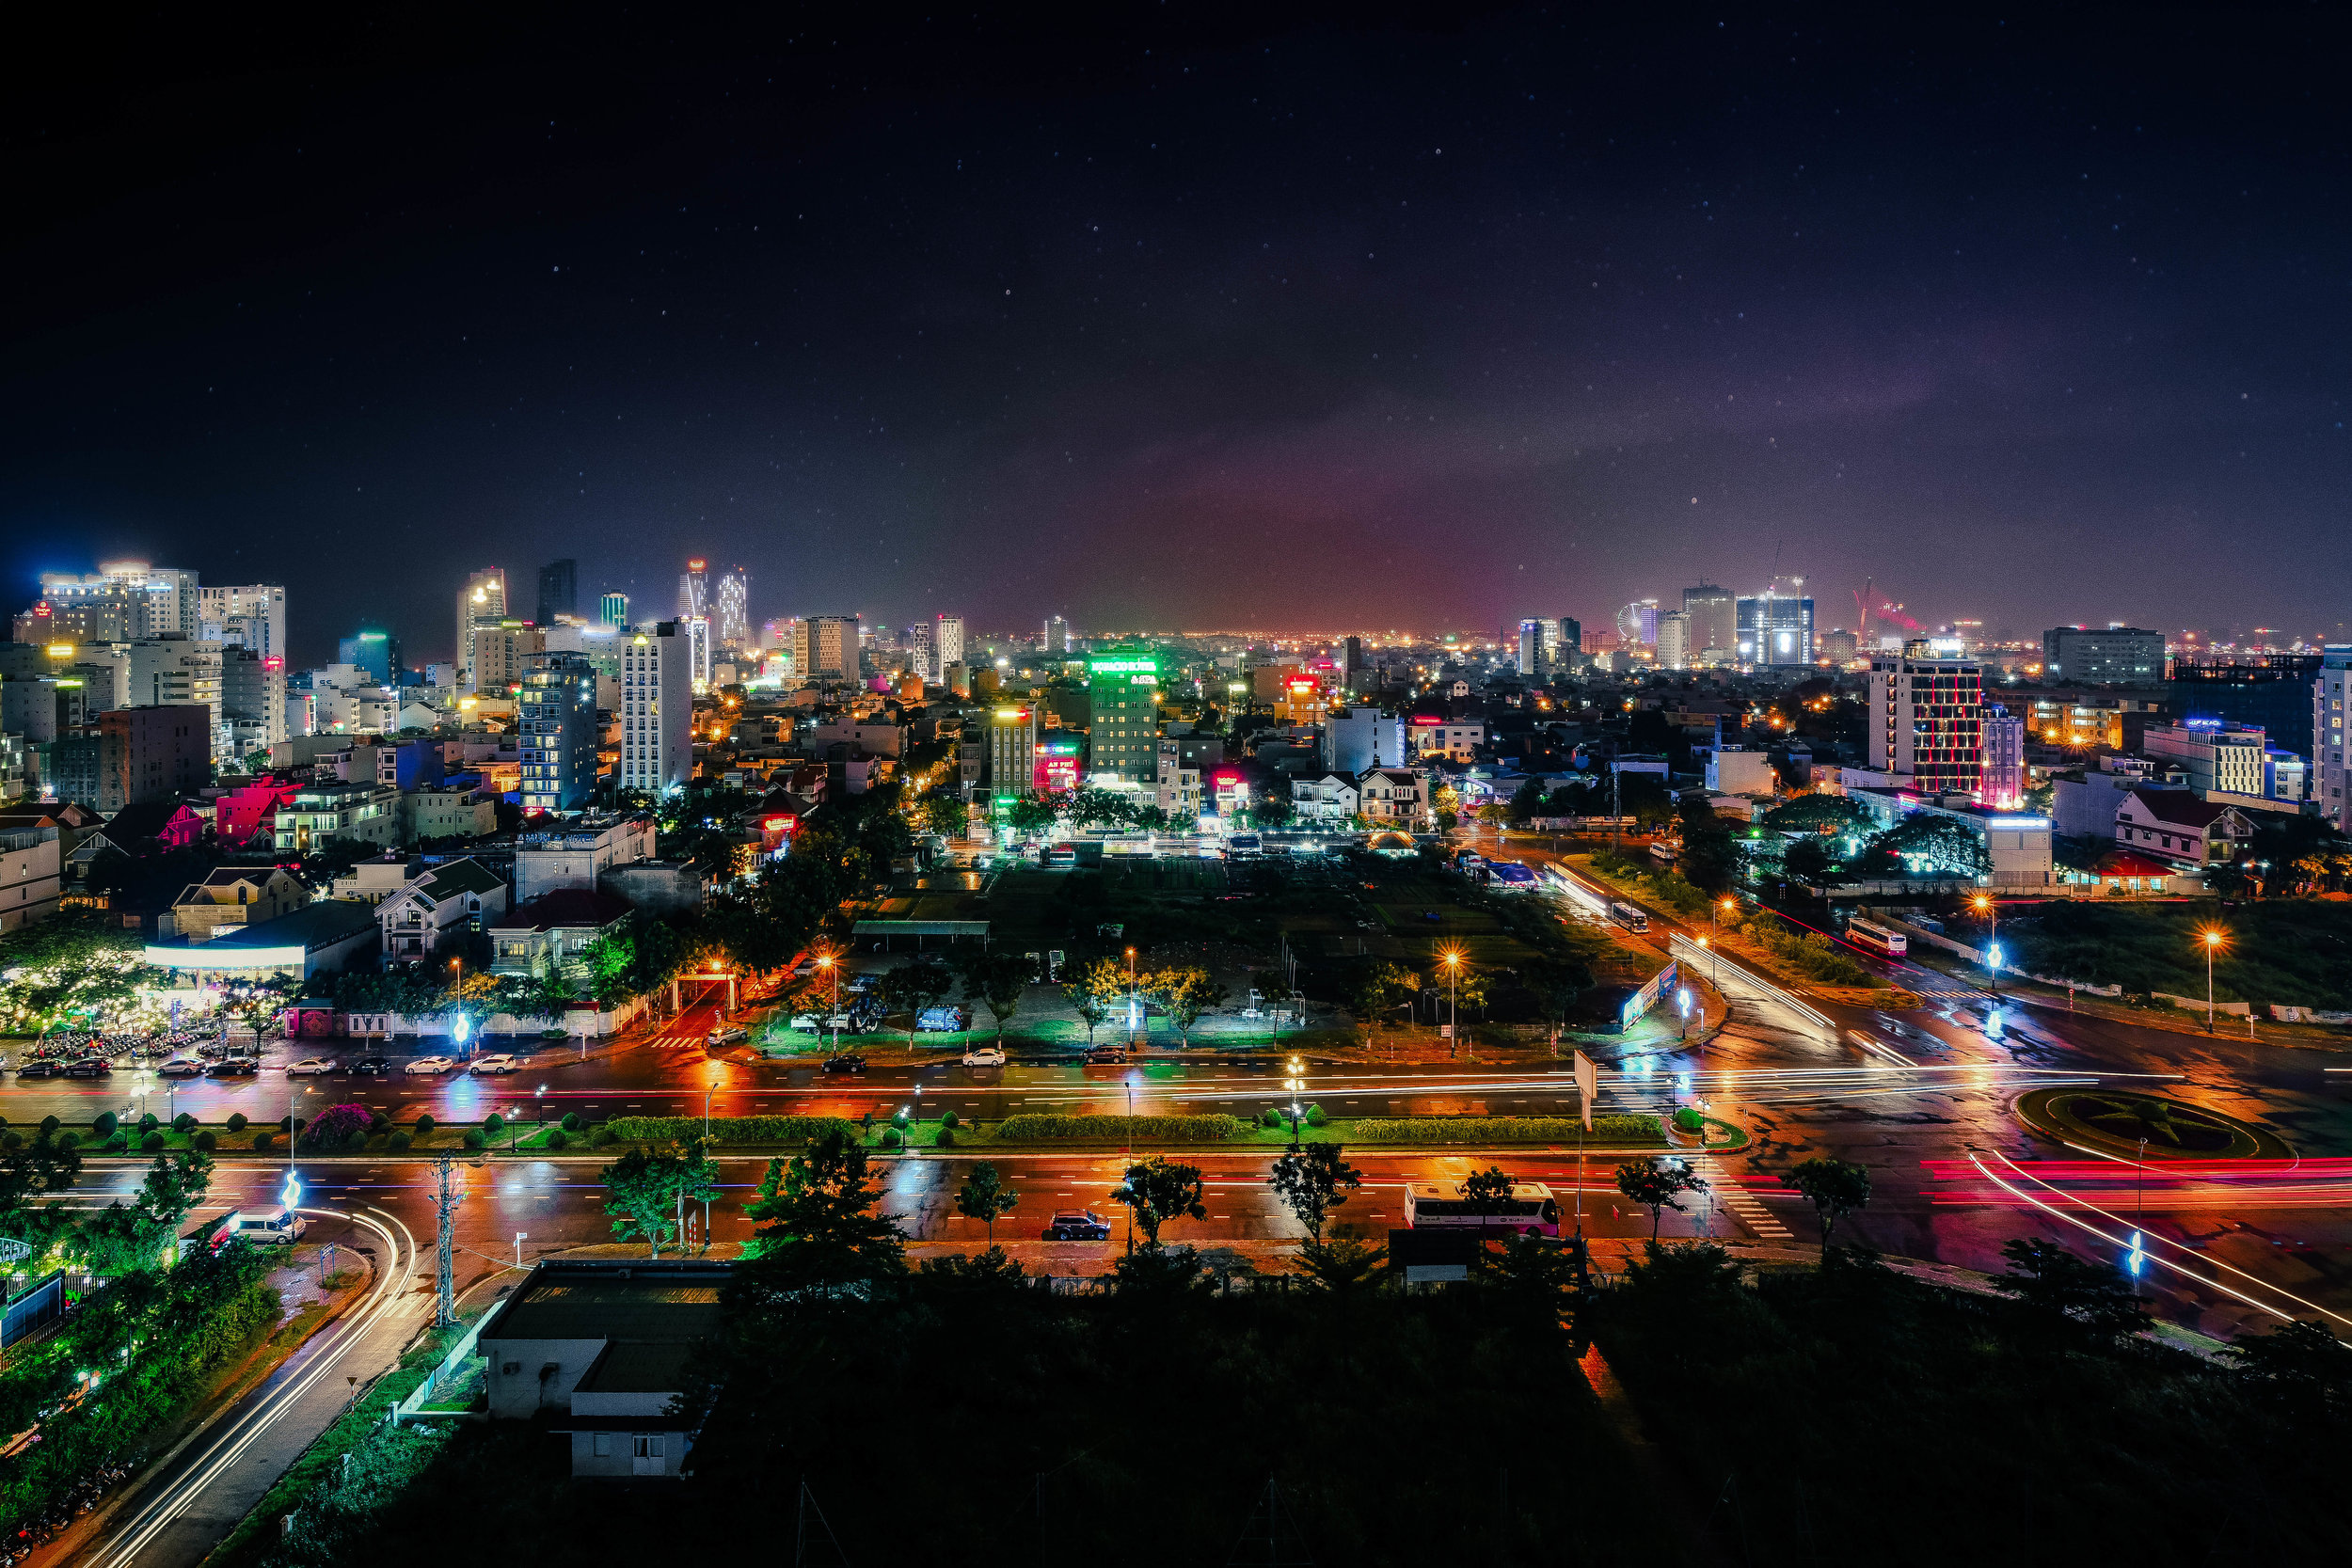 Da Nang cityscape at night